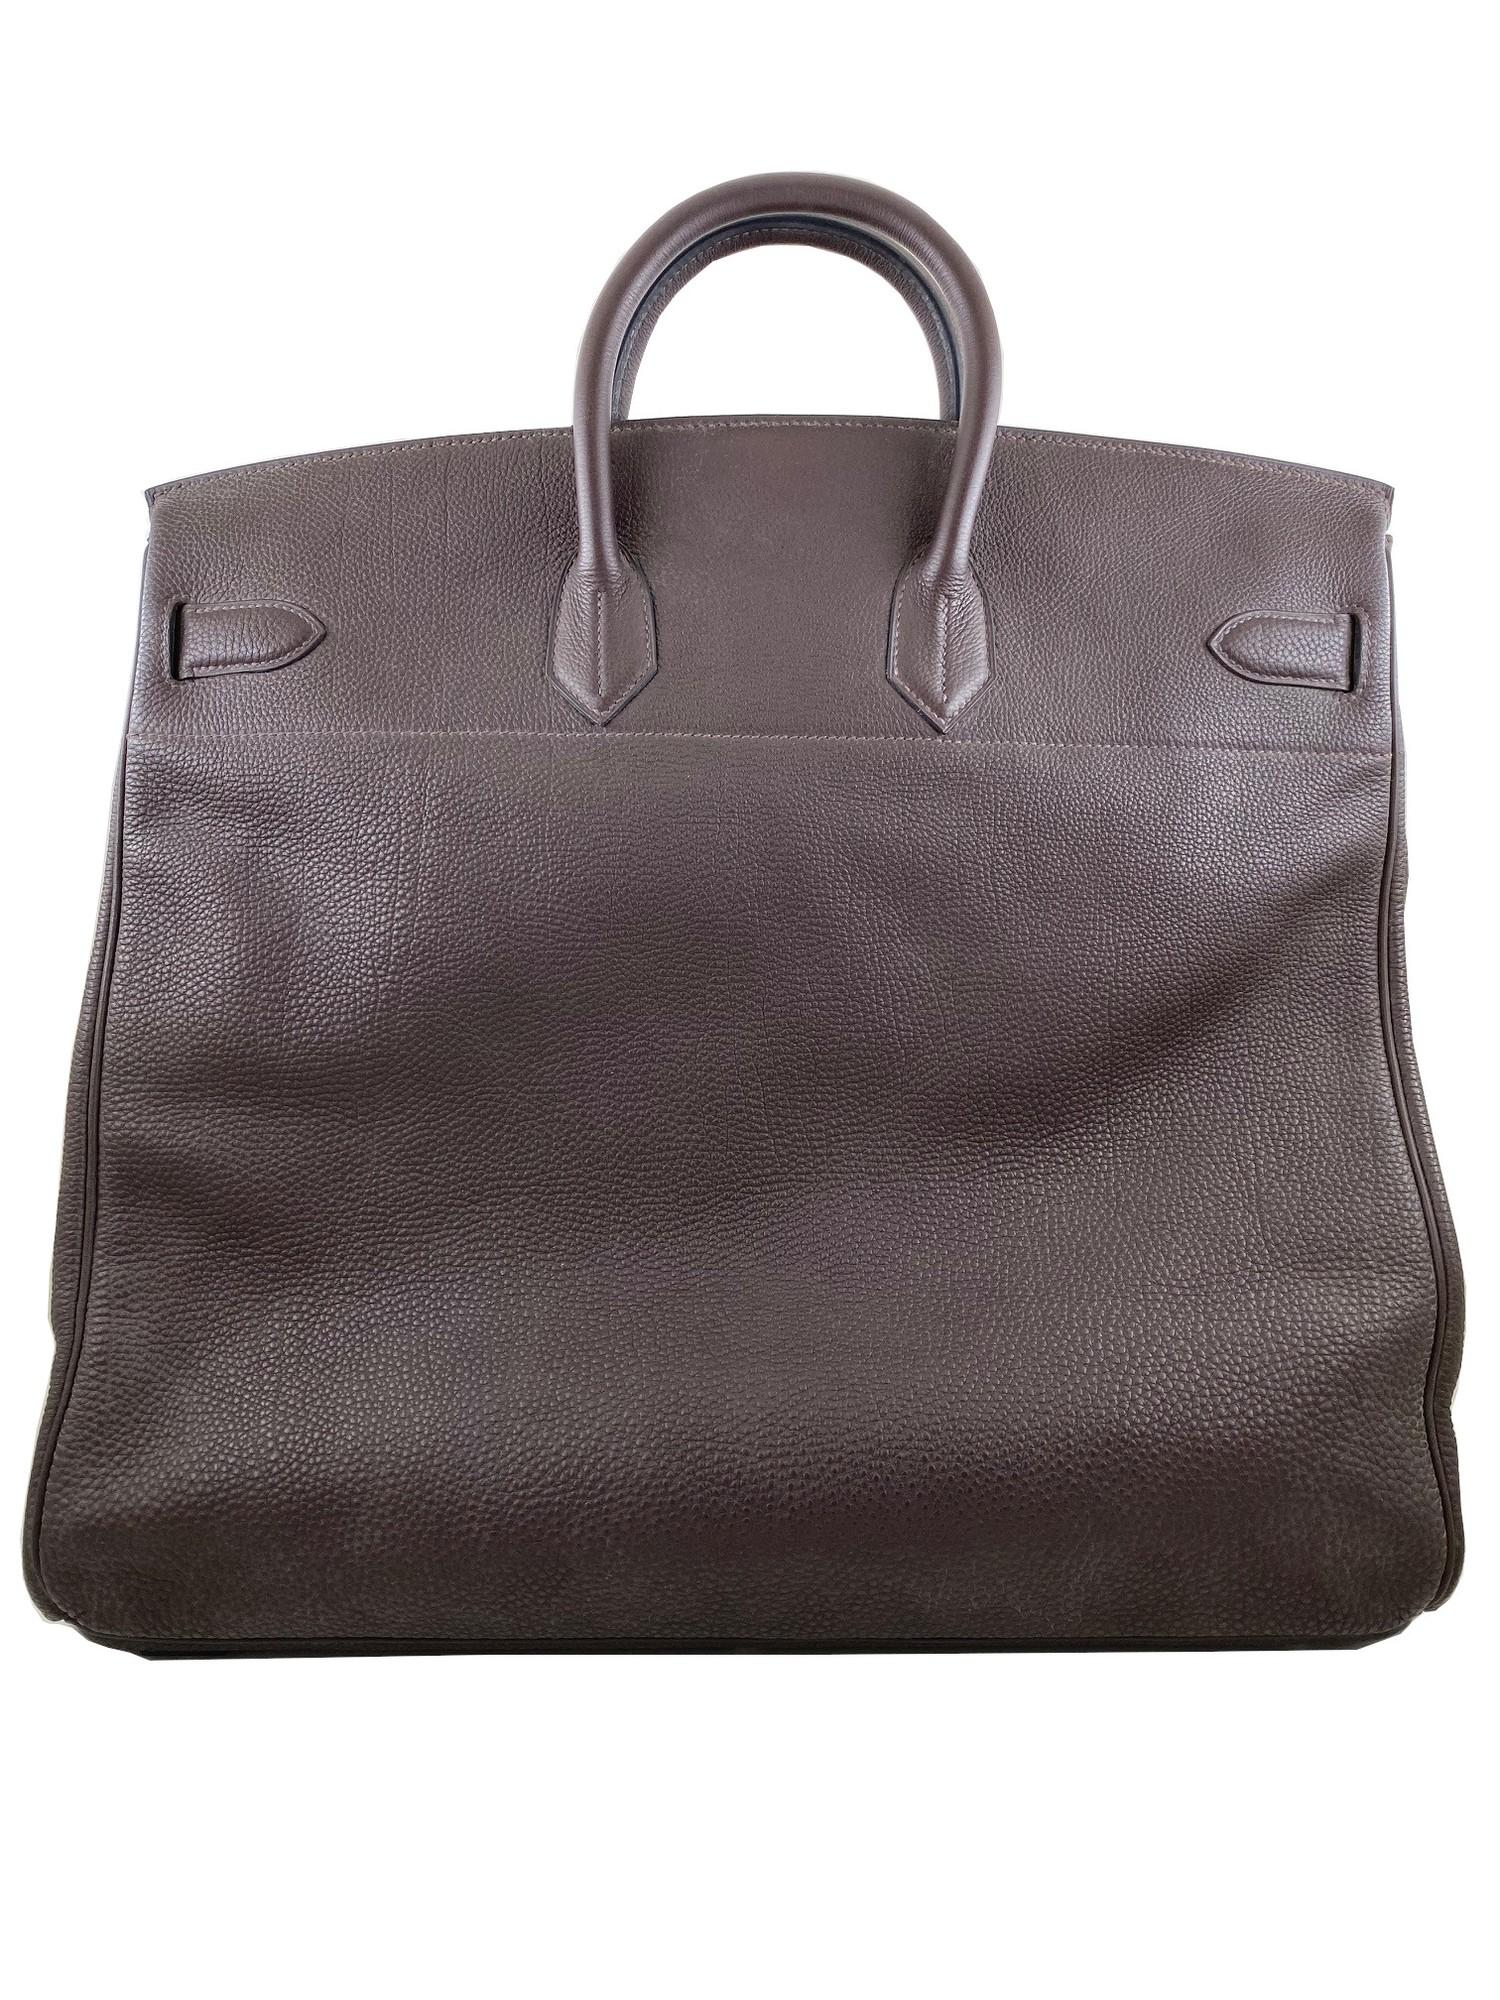 A brown Hermes Birkin Haut à Courroies (HAC) in togo leather with gold hardware, with dustbag, lock, - Image 2 of 15